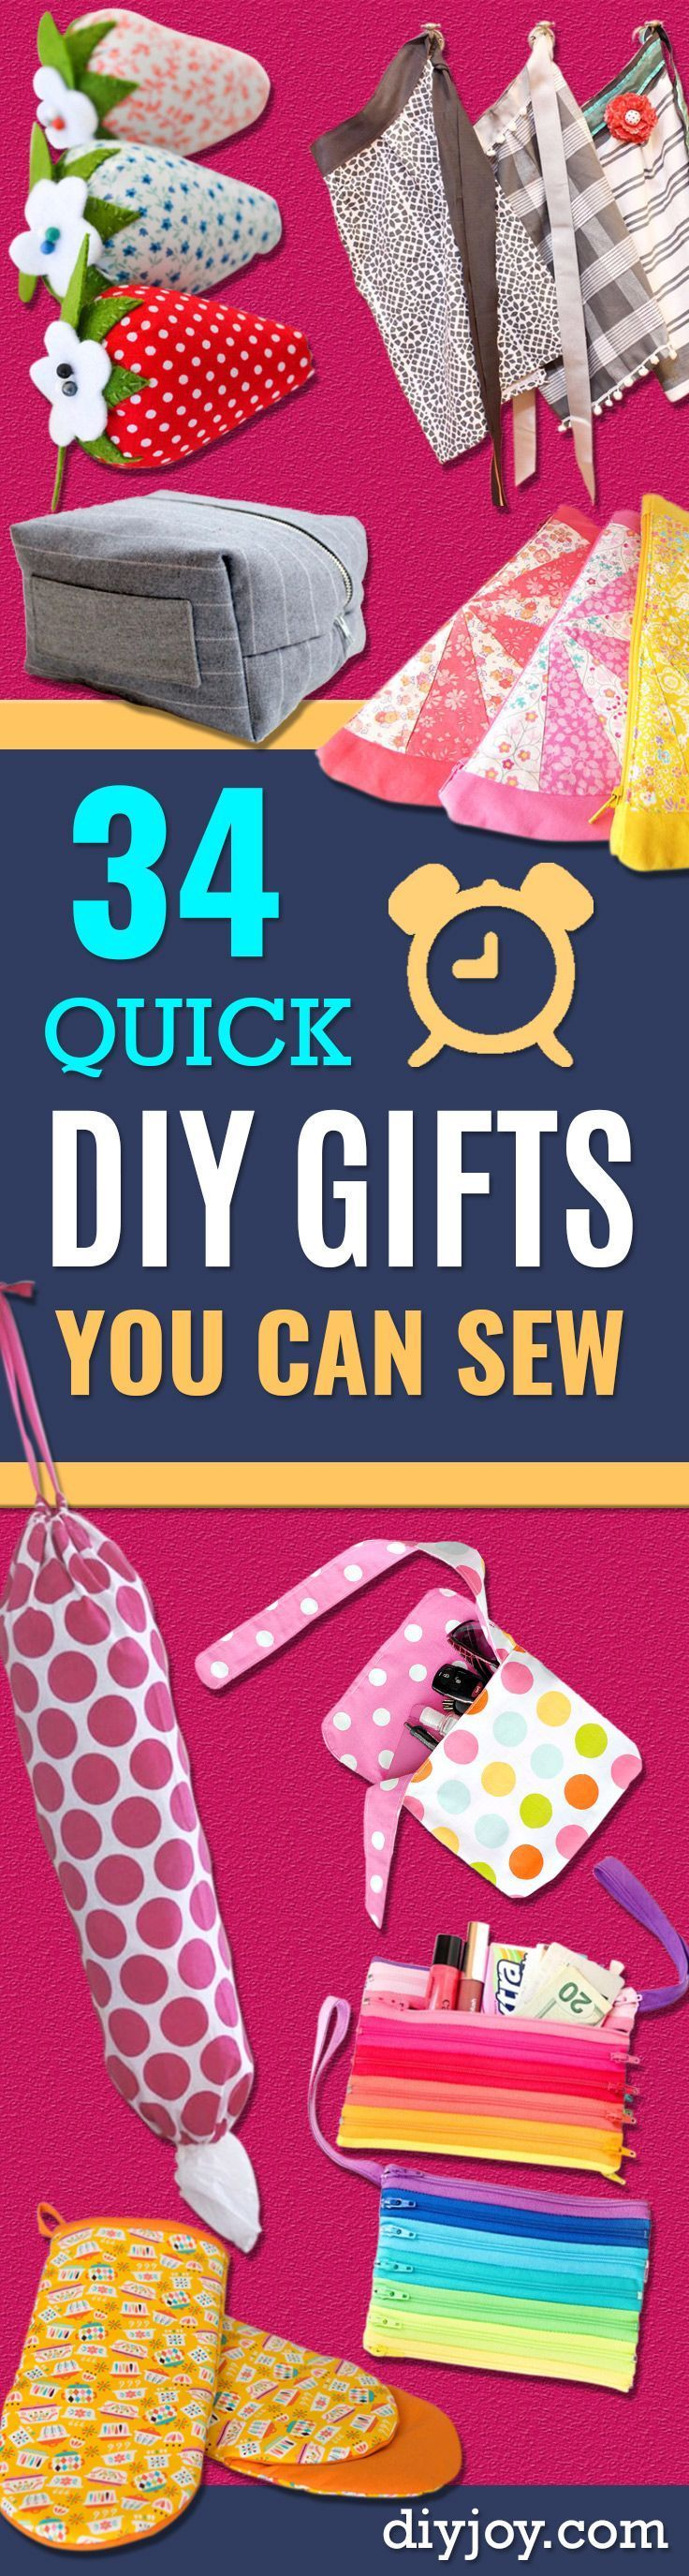 34 Quick DIY Gifts To Sew For Friends and Family | Sewing ...